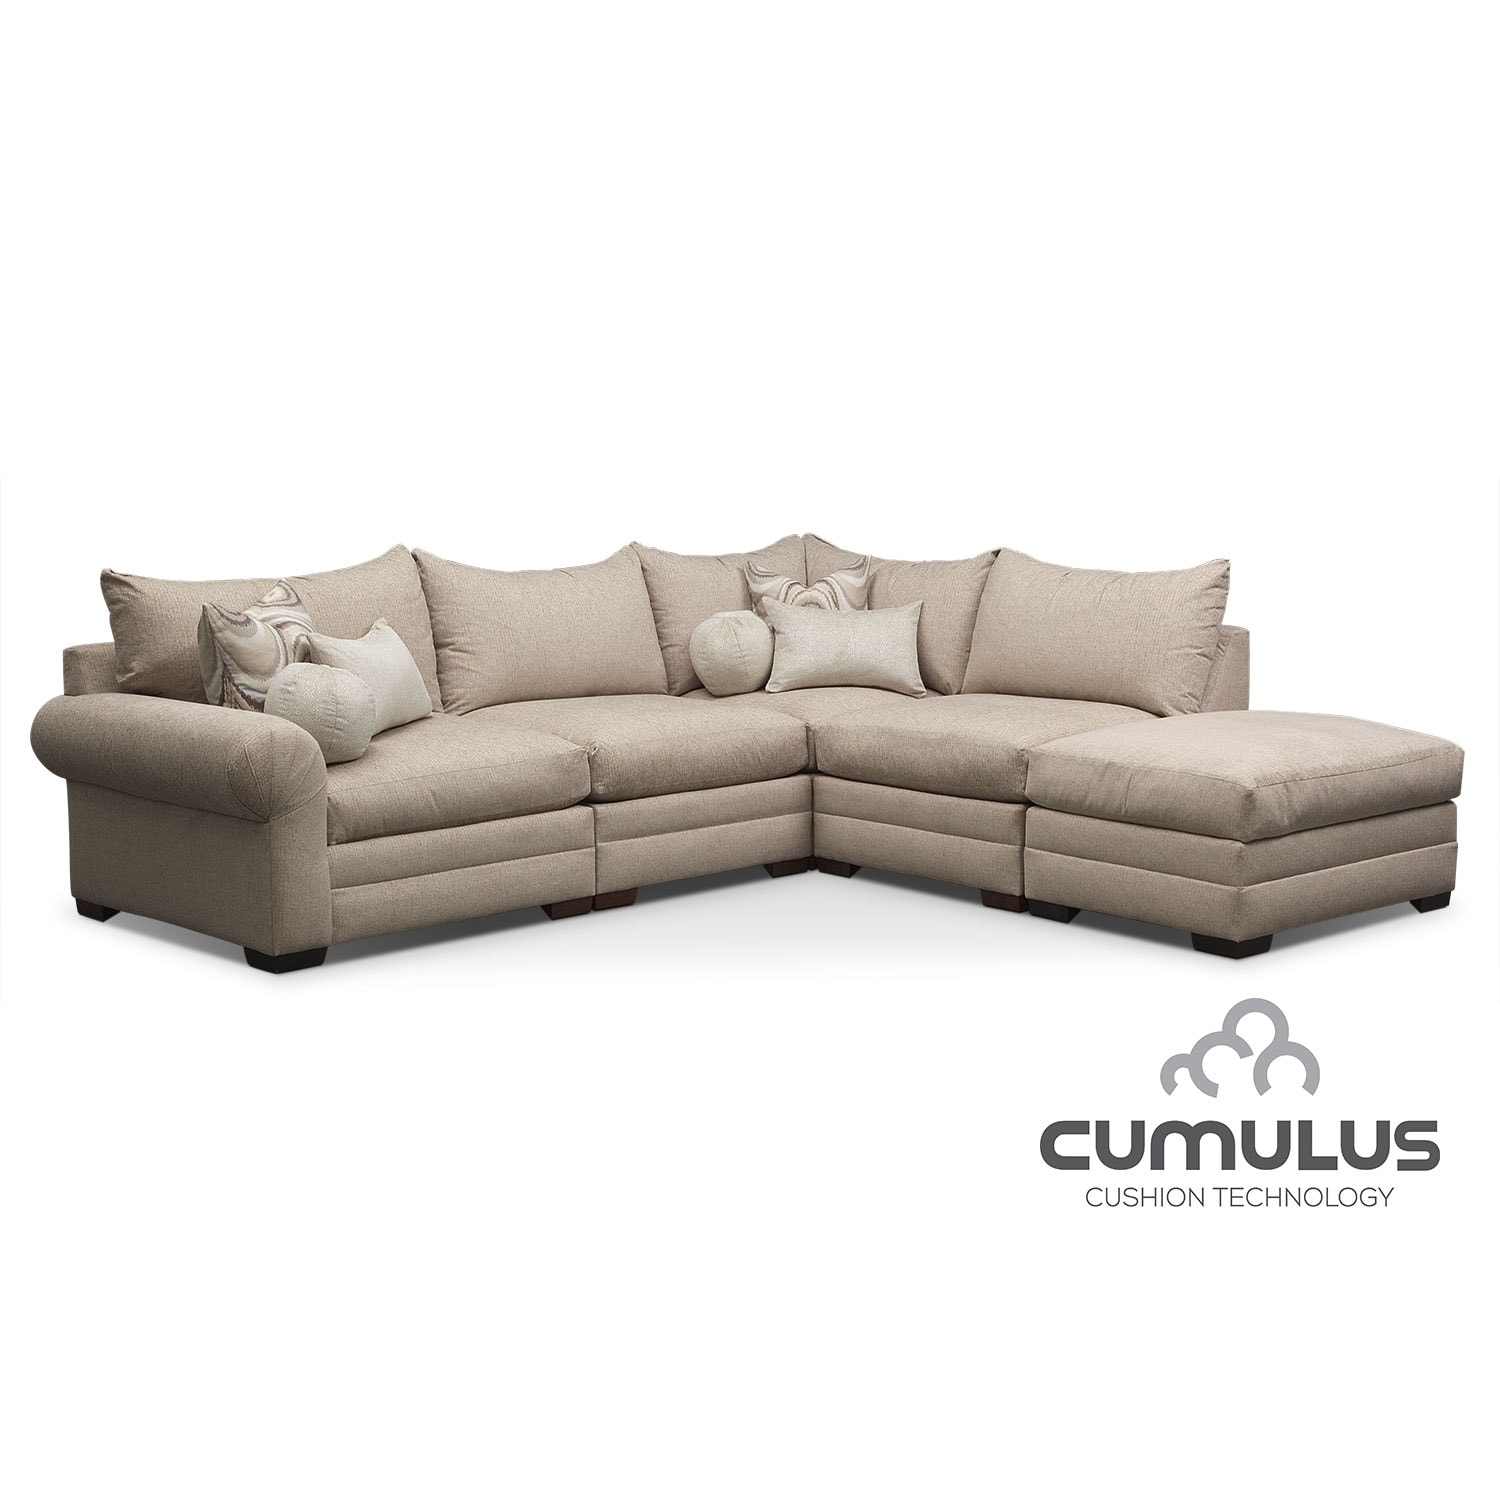 Wilshire 5-Piece Right-Facing Sectional - Cream